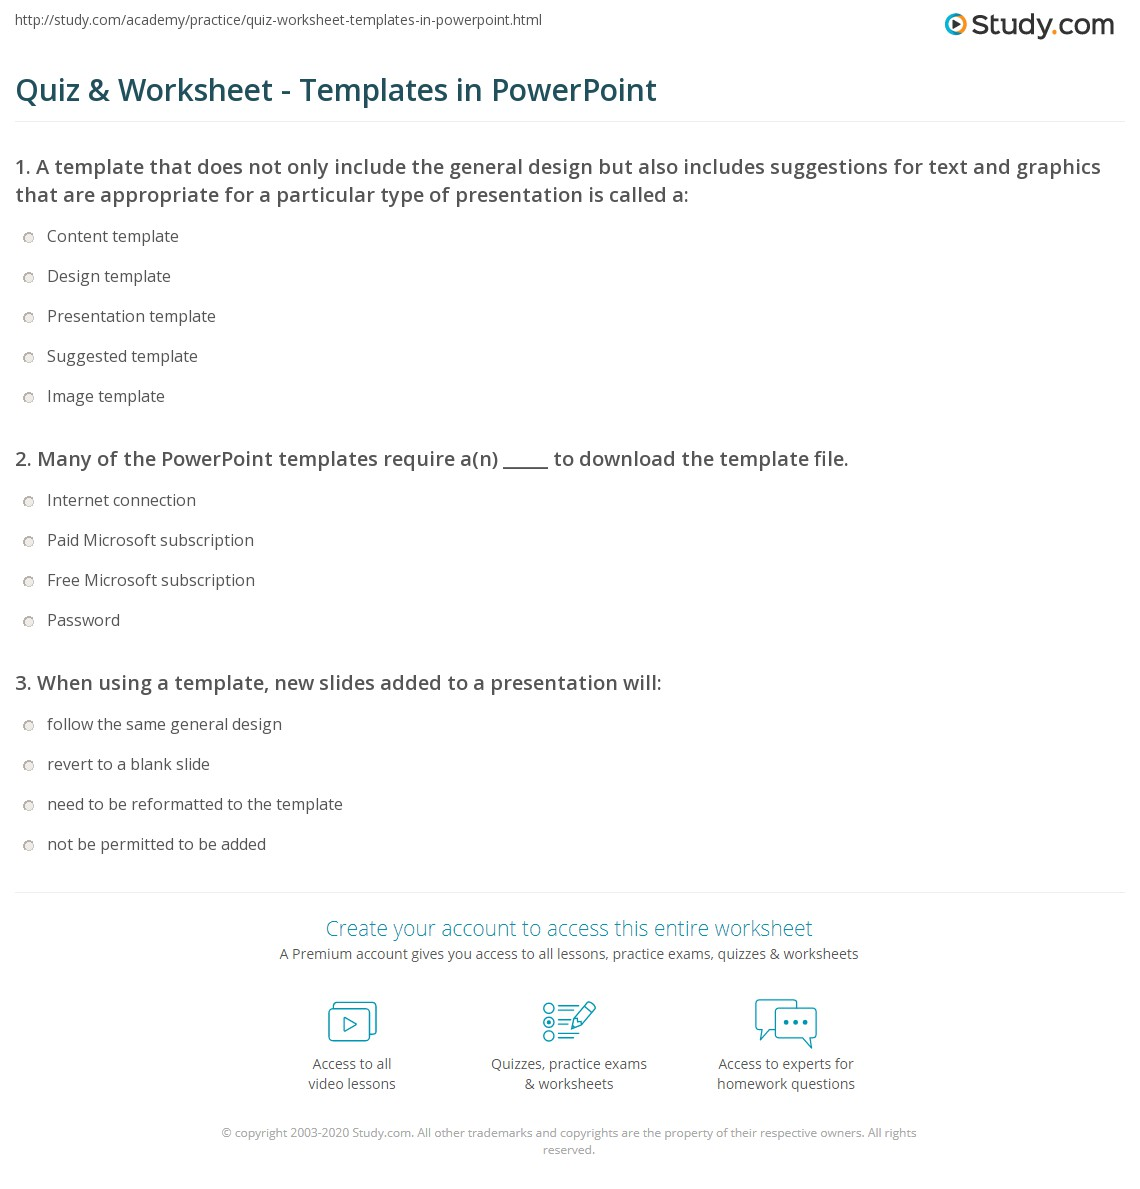 Quiz & Worksheet - Templates in PowerPoint | Study.com